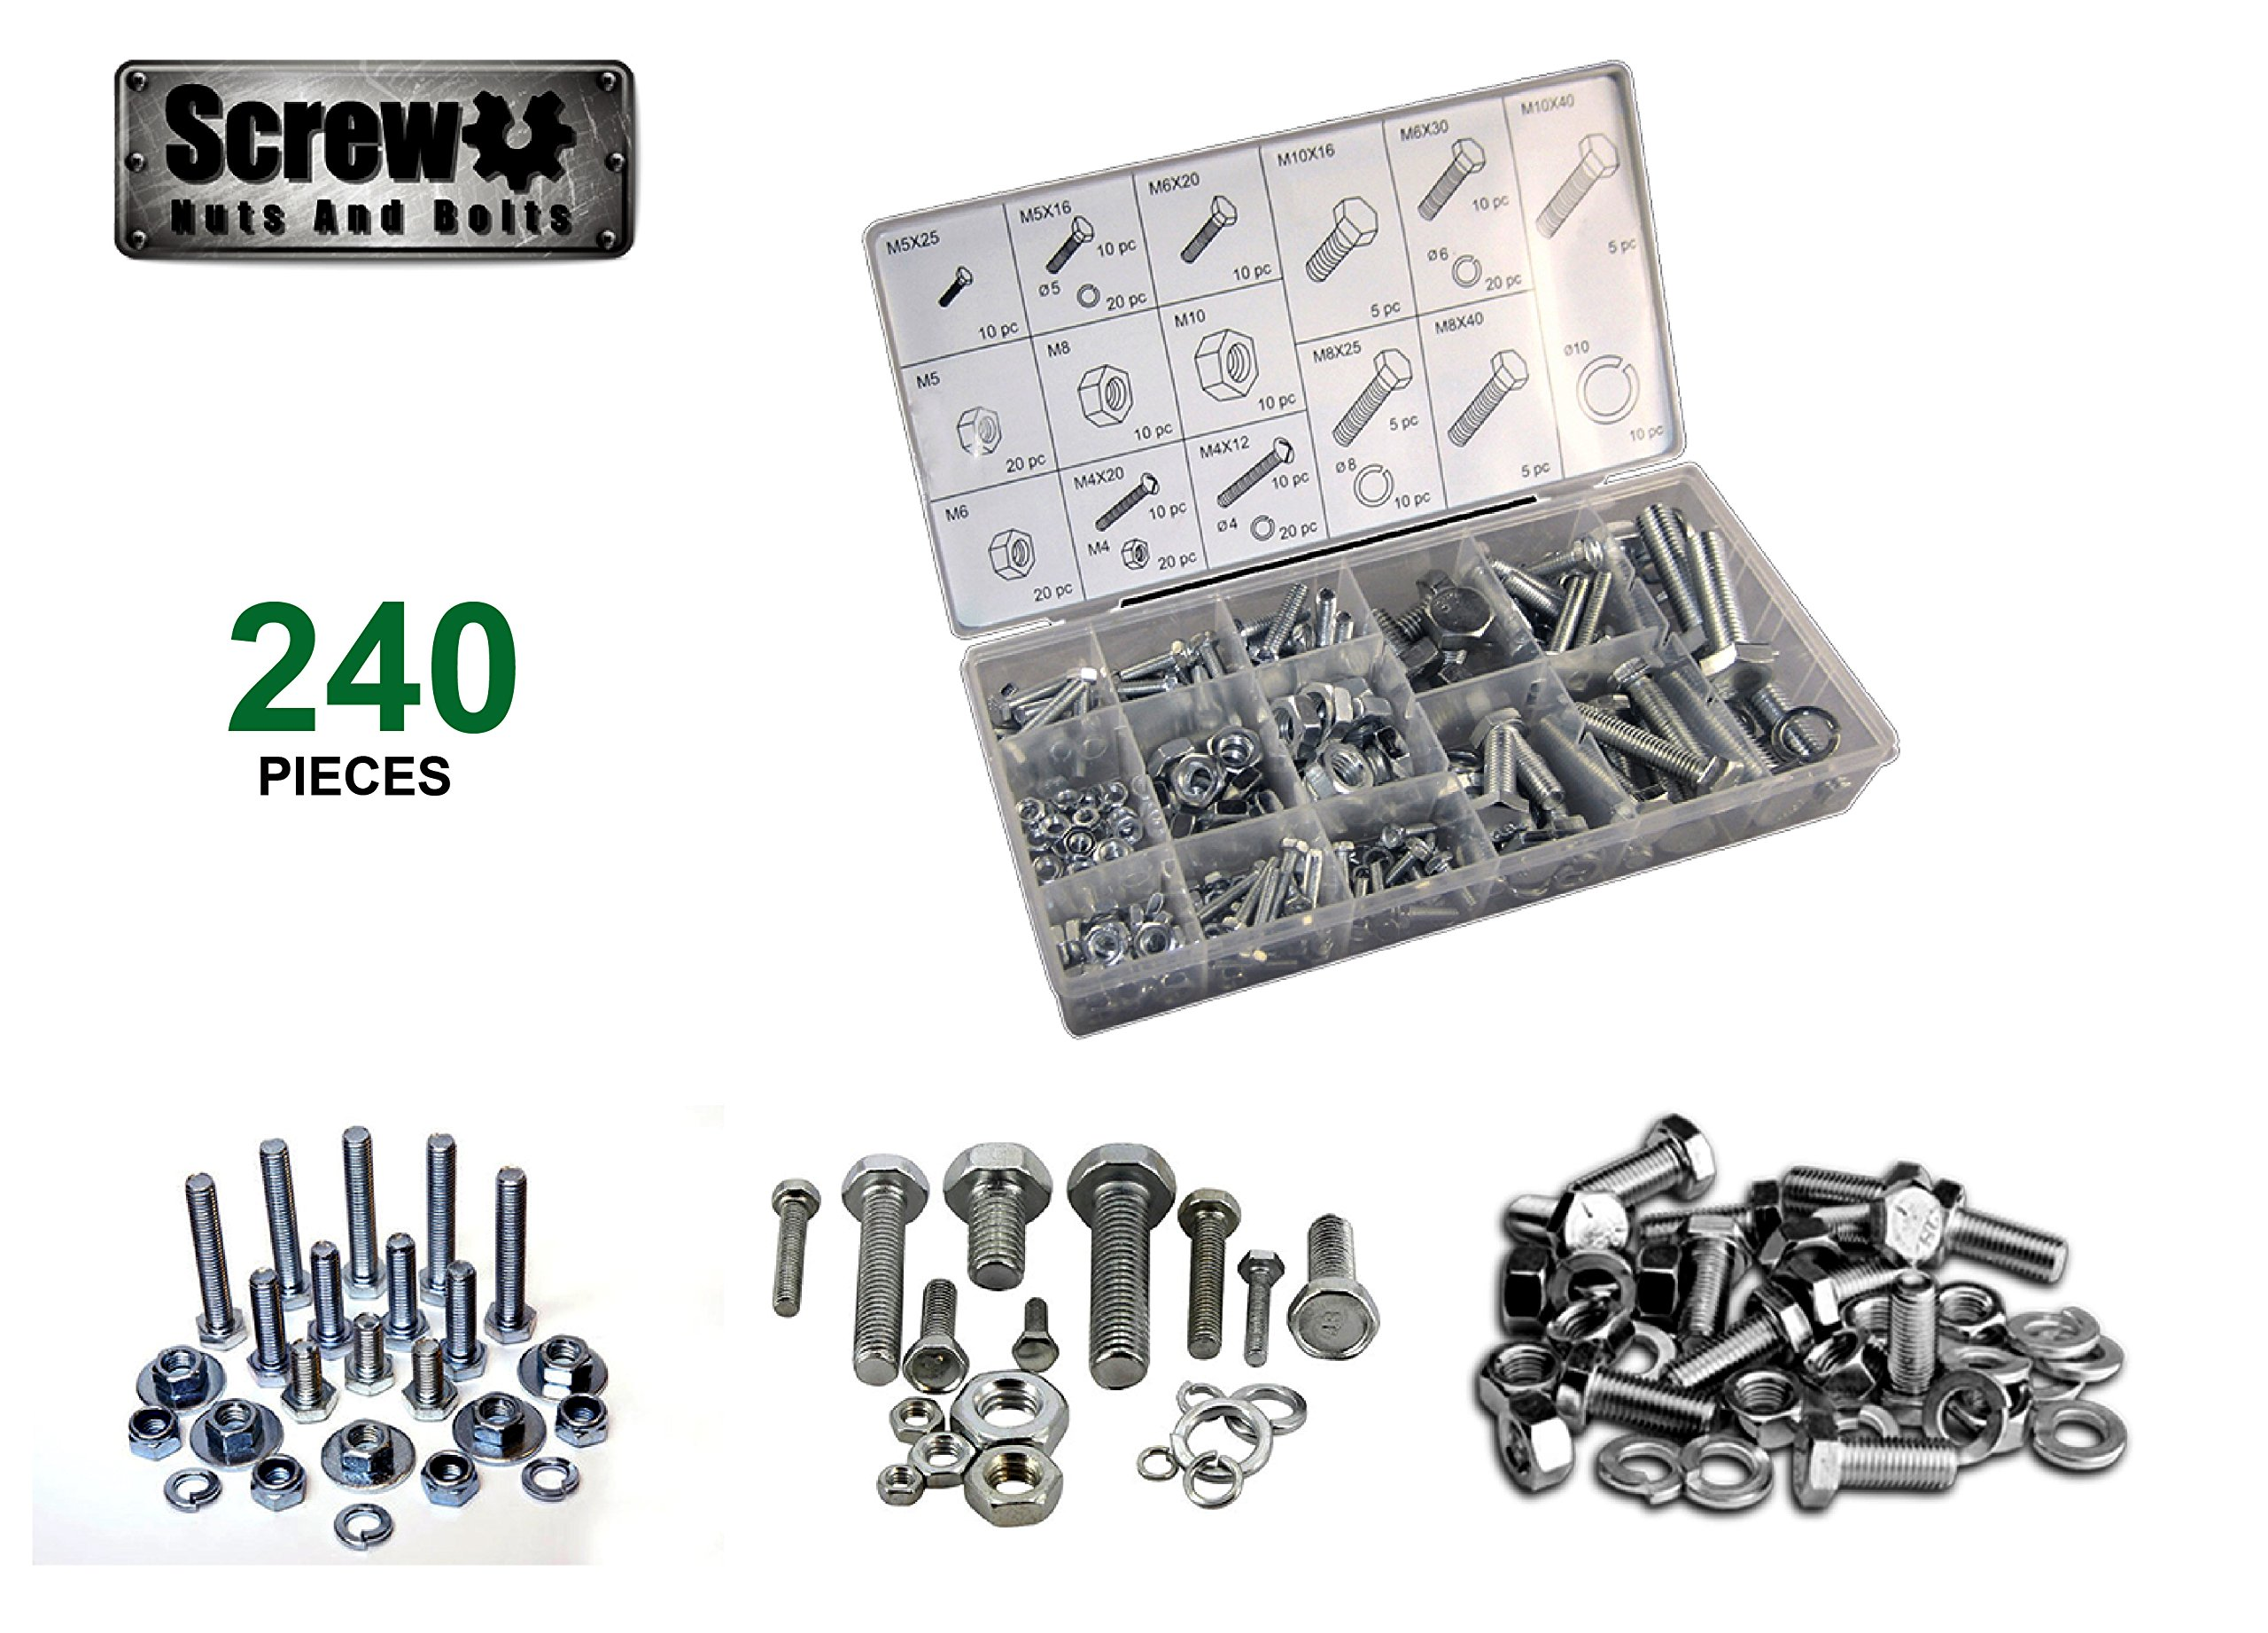 Screw U- Nut and Bolt Set 240pc: Heavy Duty Hardware Assortment, Metric Nuts and Bolts Set, Hex Nuts, Washers and Bolts- Great for Home Improvement, Automotive, Electrical, and Binding Metals.